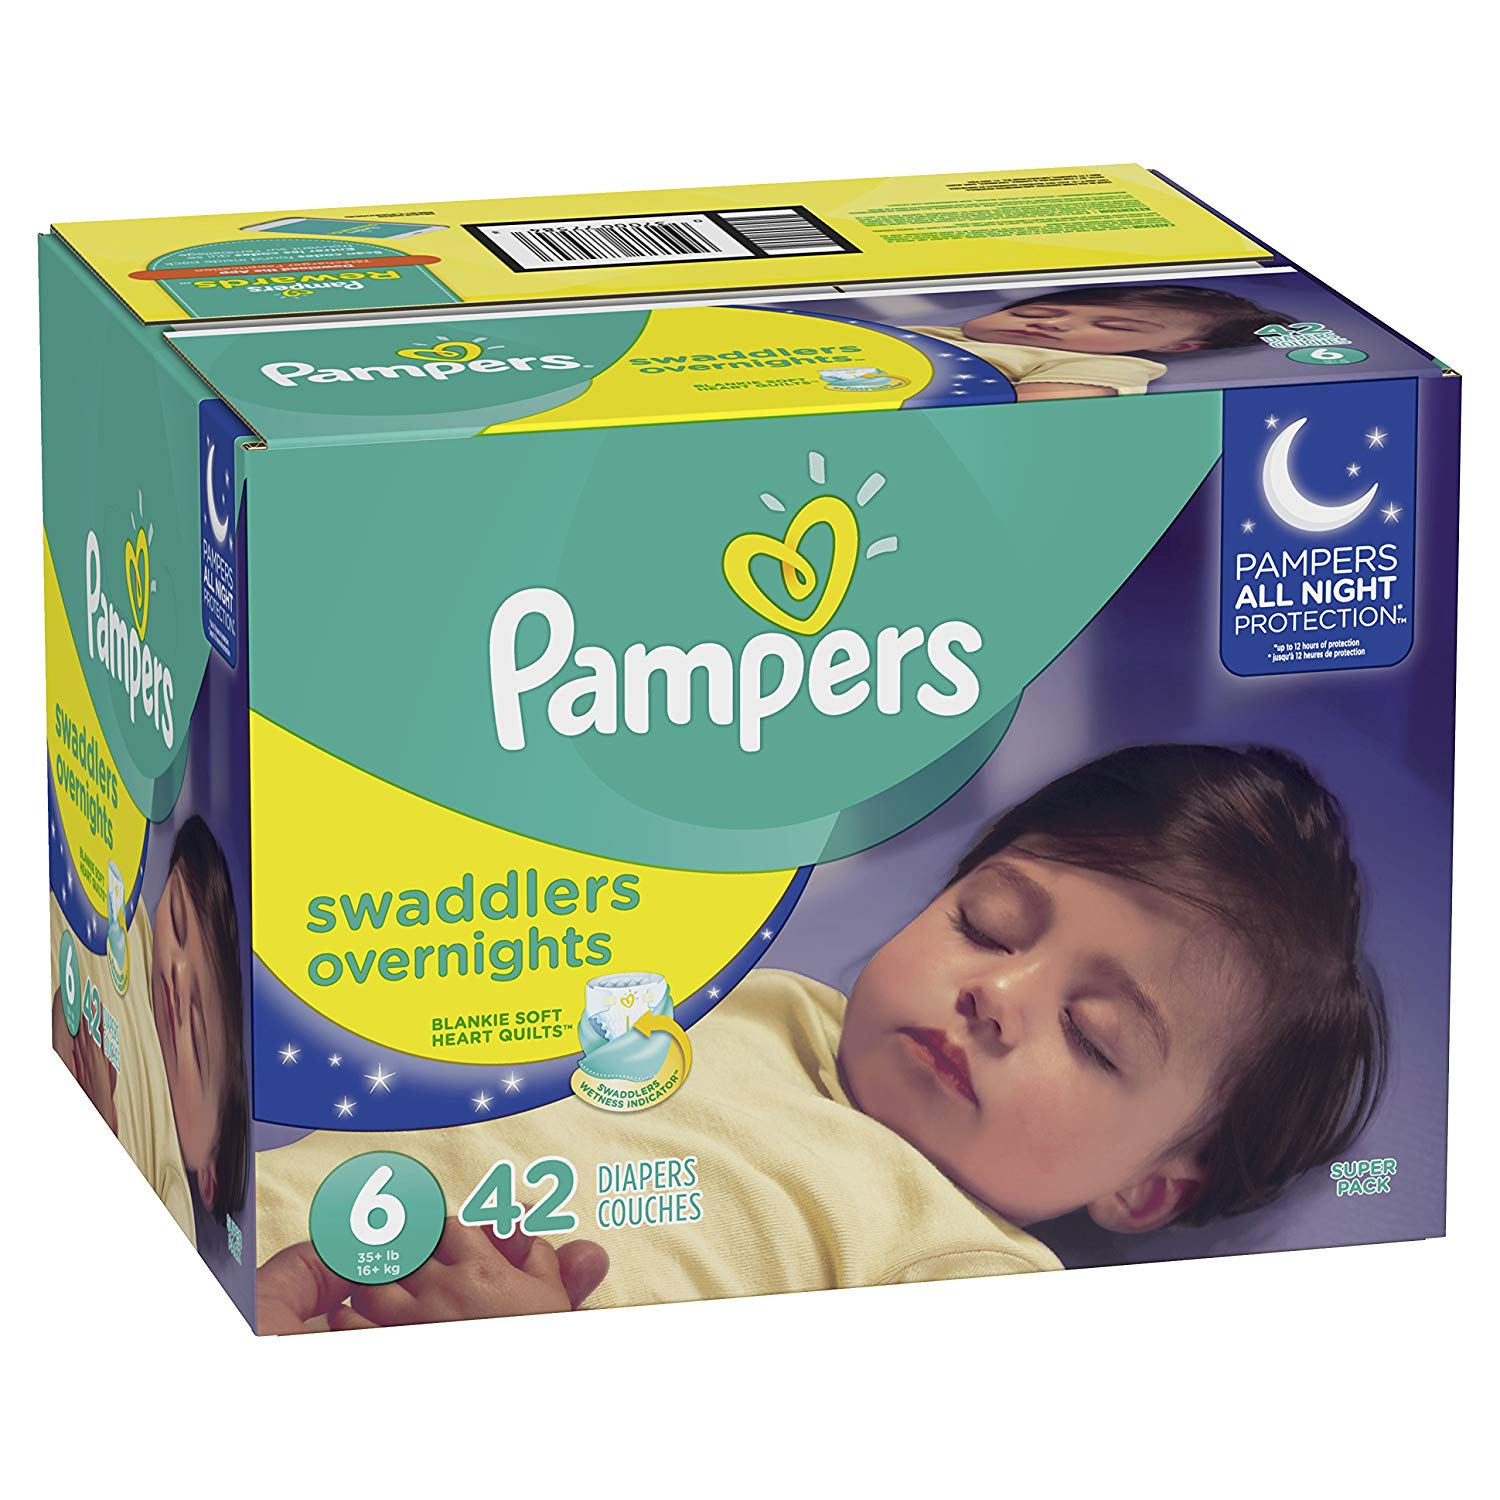 Pampers Swaddlers Overnights Diapers Size 6 - 42 ct. (35+ lb.)